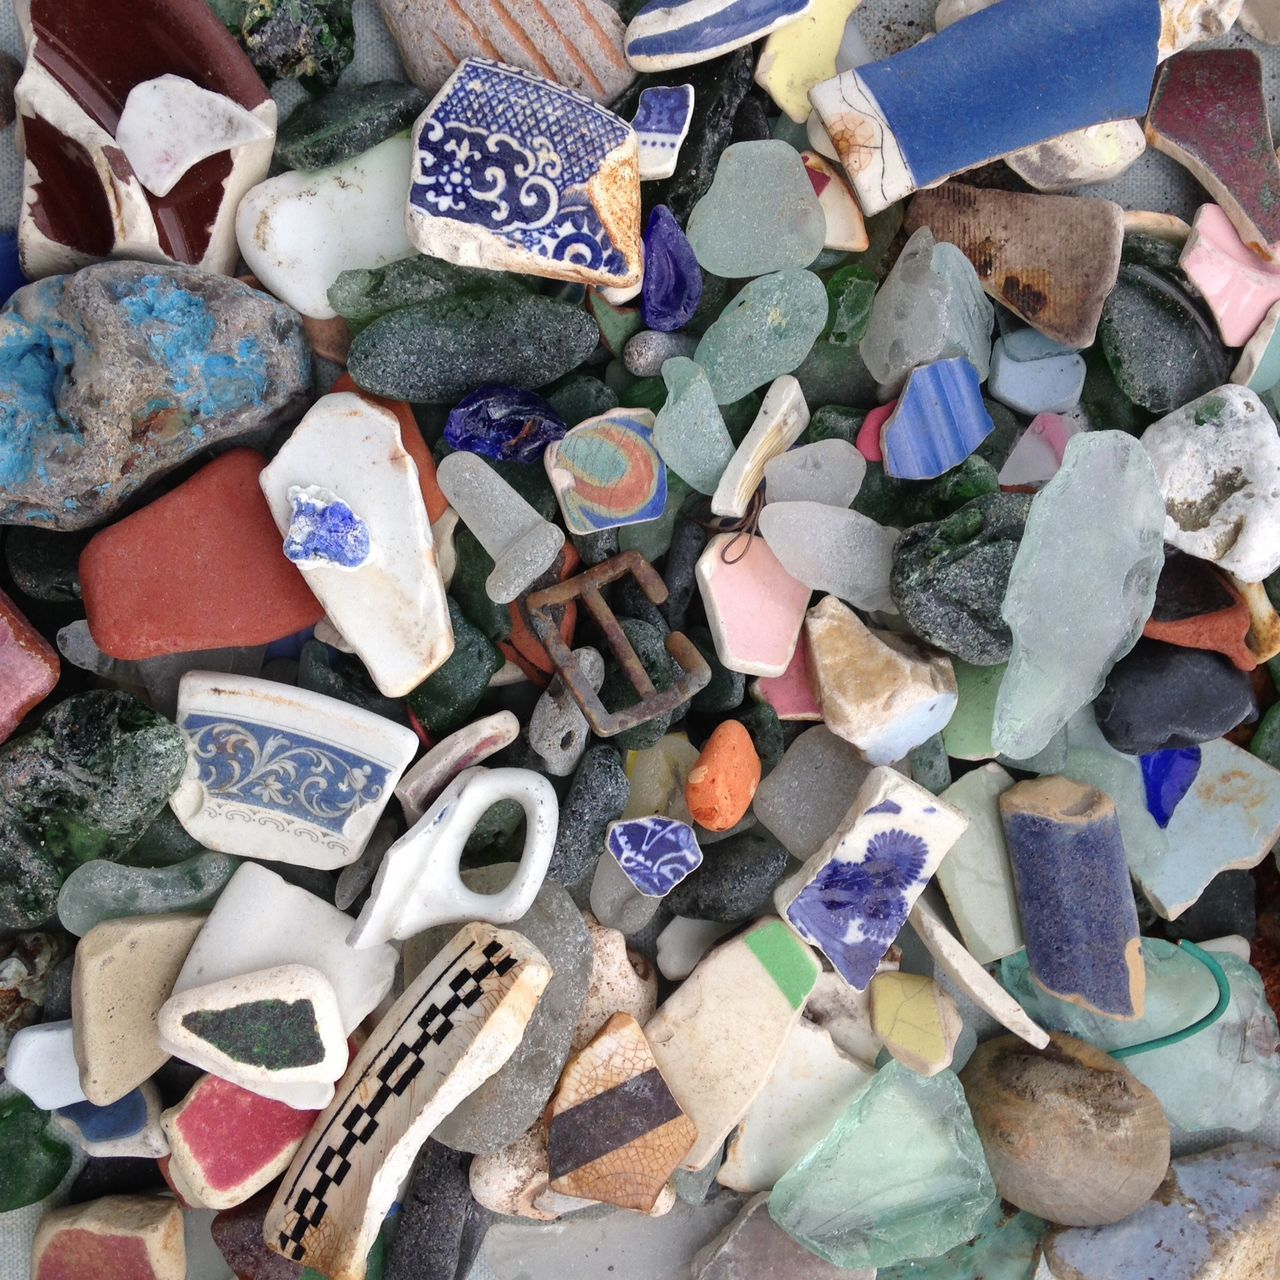 Abundance Arrangement Beach Beach Finds Beachcombing Beachphotography Ceramic Sherds Collection Distressed FX Full Frame Heap Jurassic Coast Multi Colored Pottery Rusty Seaglass Weathered